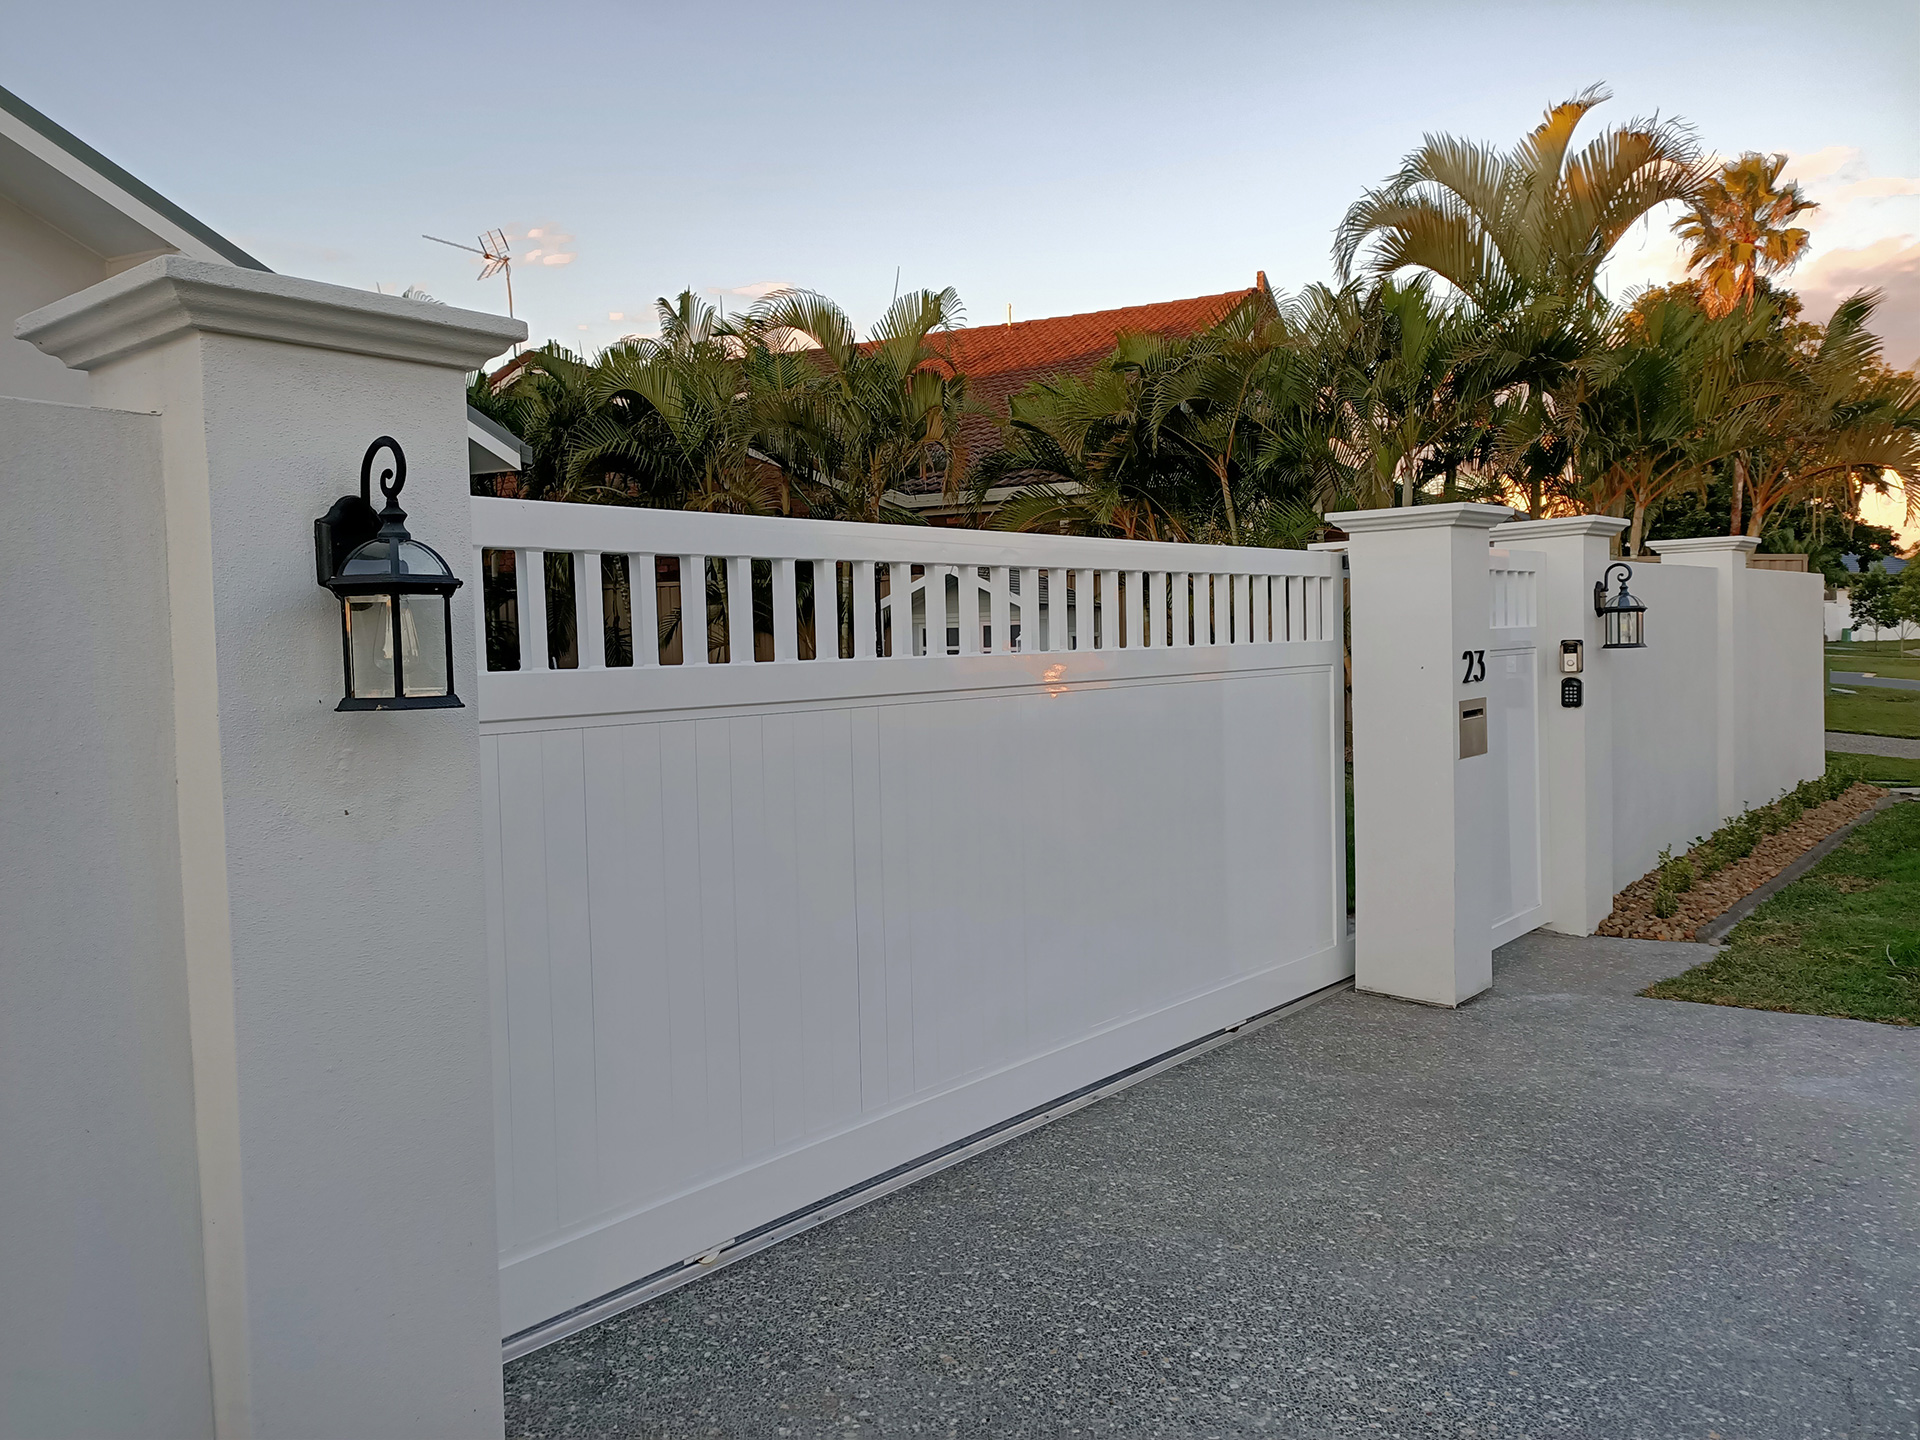 gatepost caps and fence capping gold coast Australia